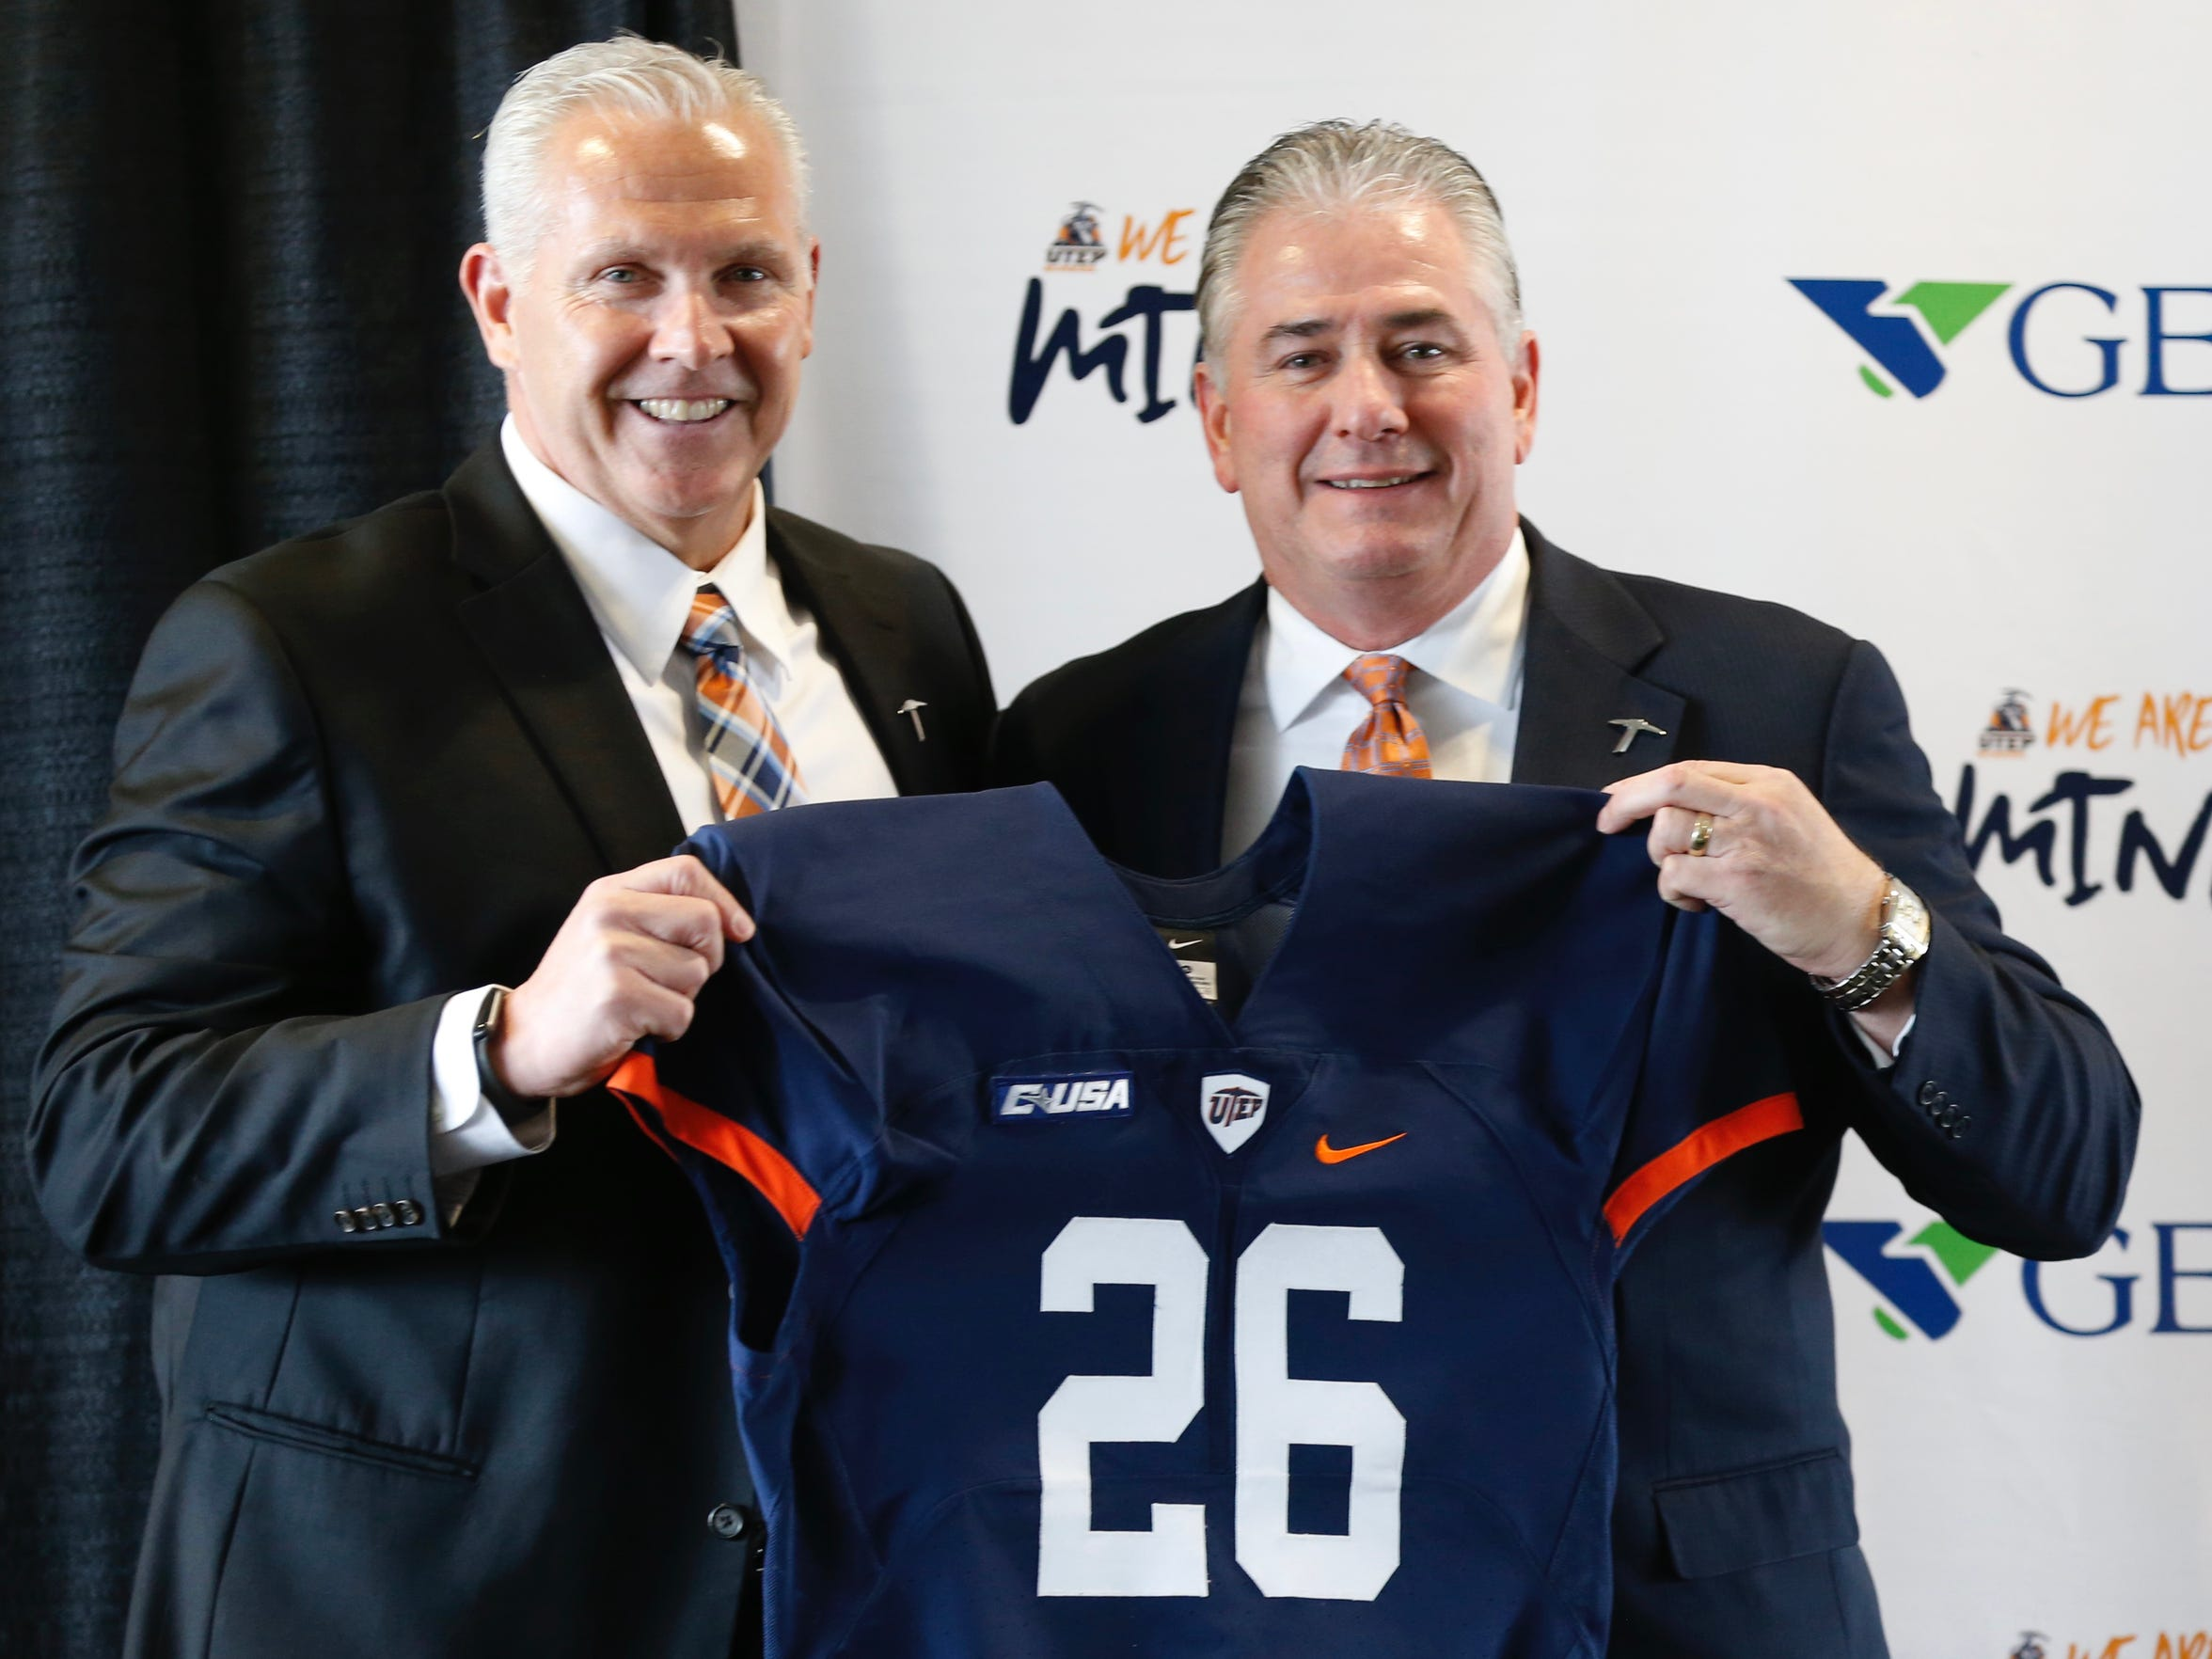 Director of UTEP Athletics Jim Sentor stands with new